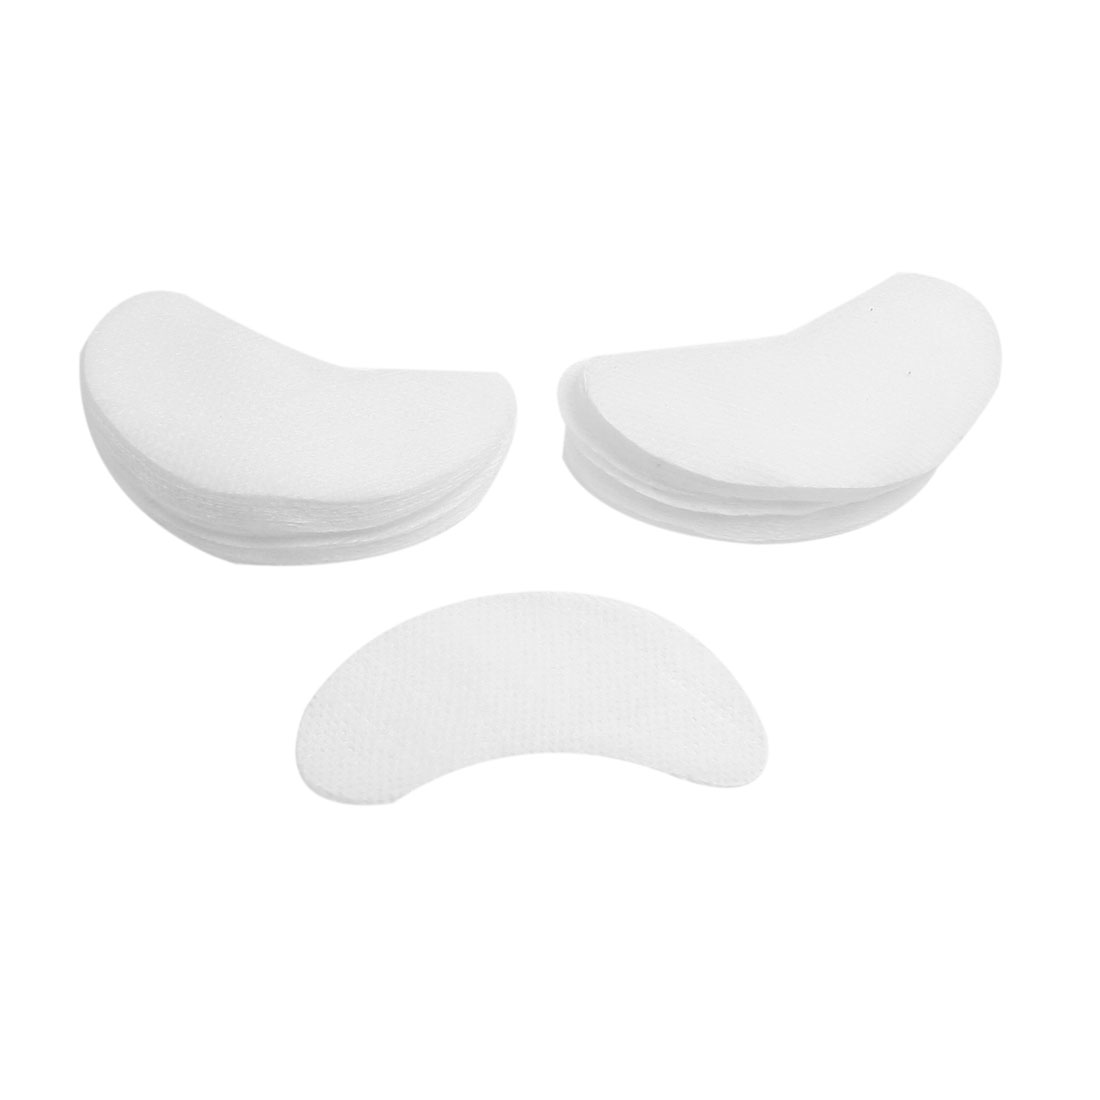 Ladies Cosmetic Tool White Double Eyelid Cotton Masks 50 Pairs